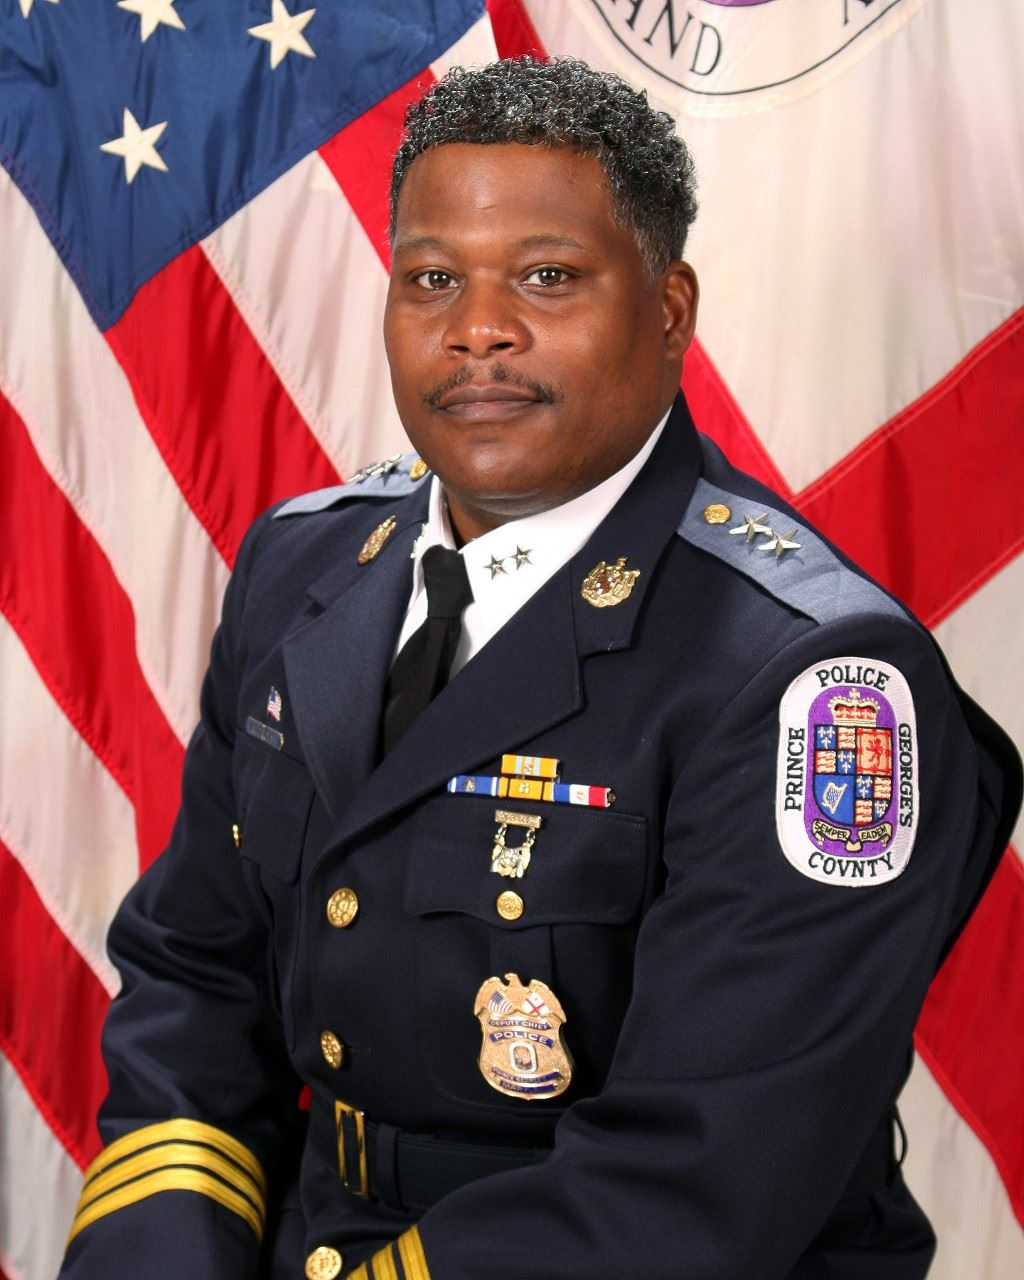 Deputy Chief George Nichols Jr